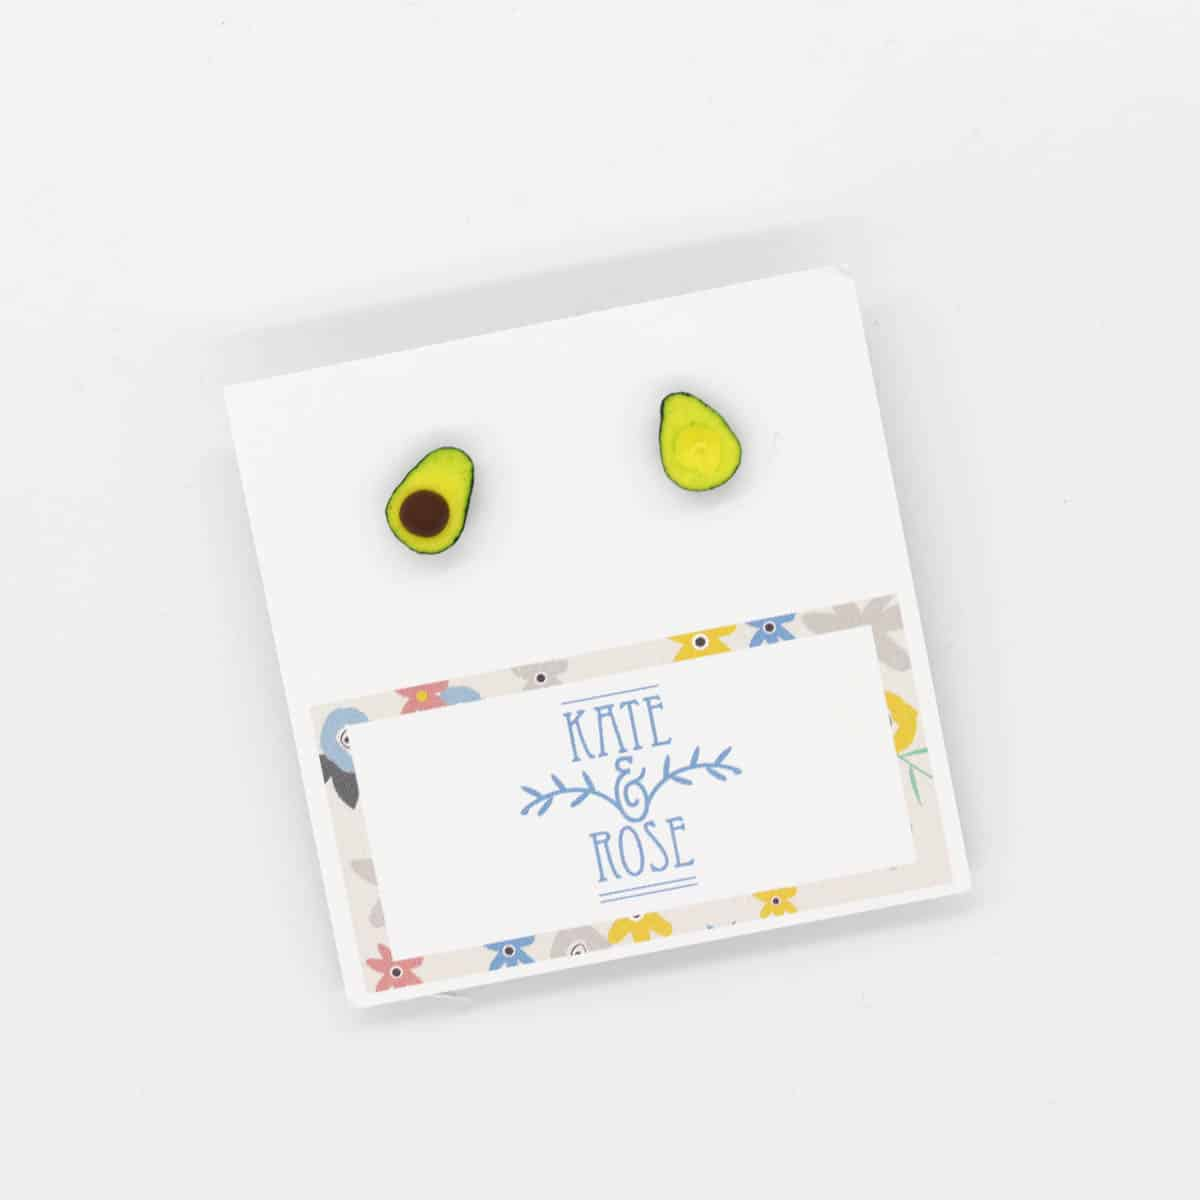 Avocado-half-pc-studs-by-kate-and-rose-fitzroy-122810-katenrosetea